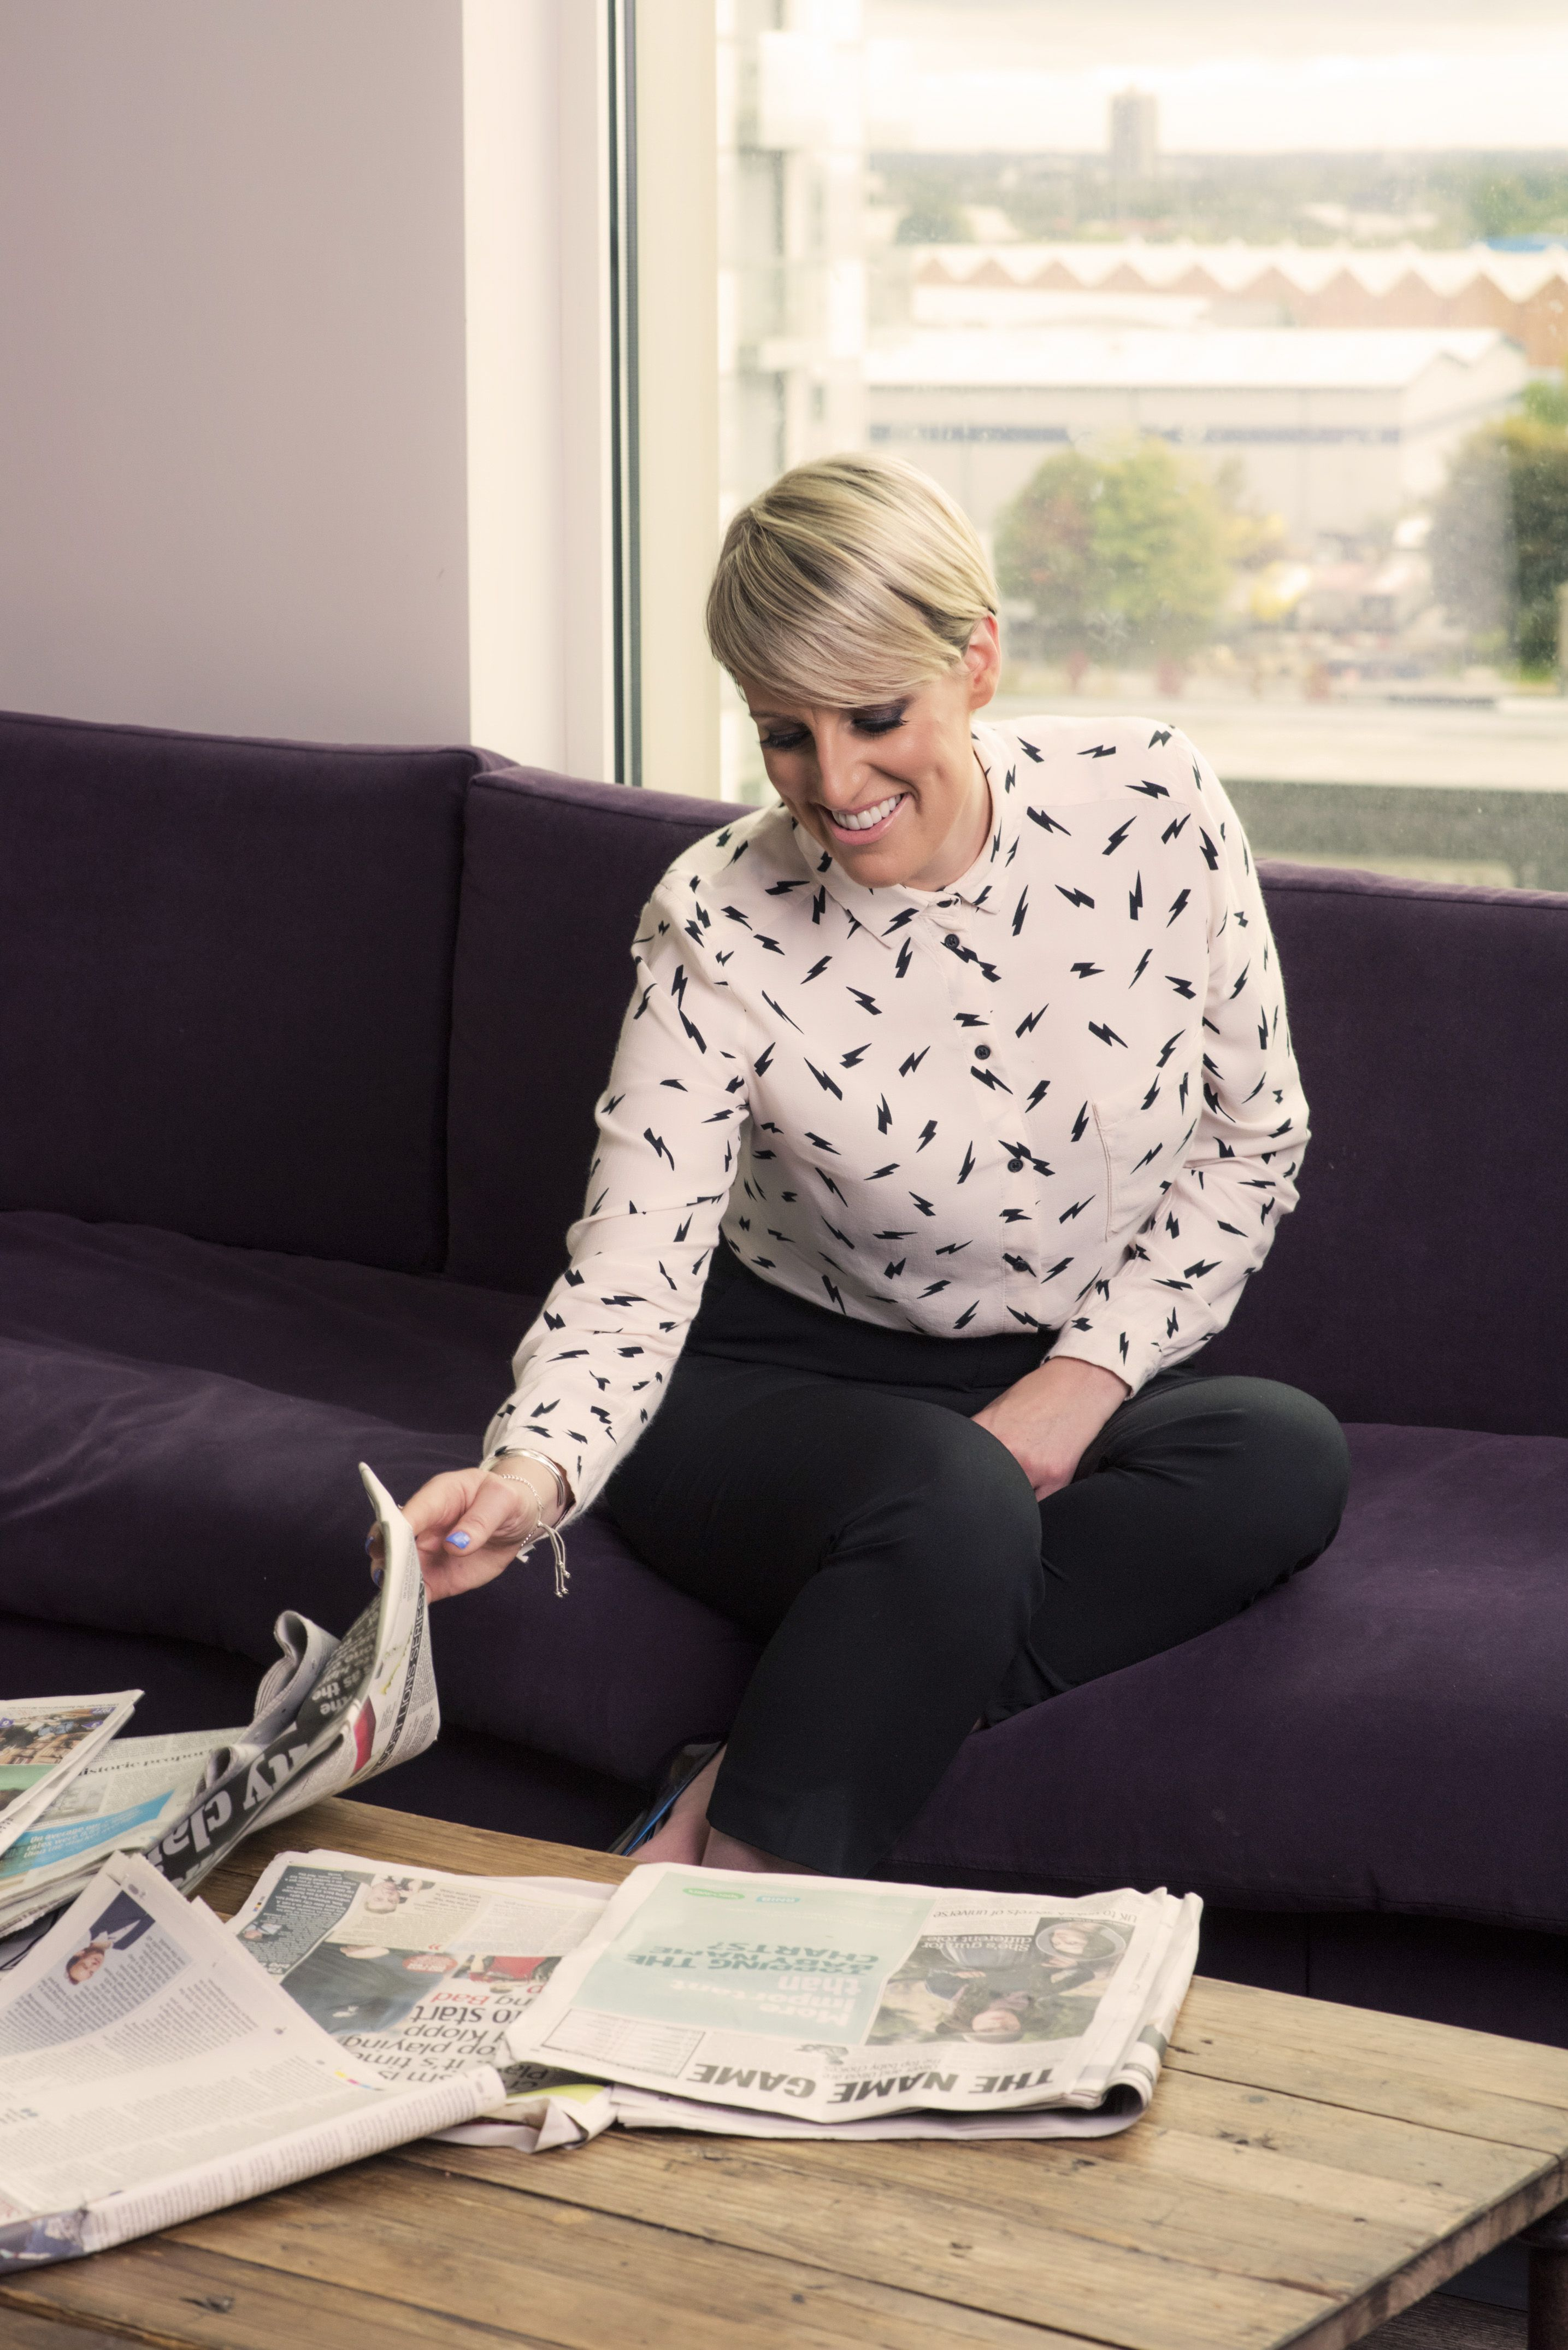 Steph McGovern shares very relatable baby incident